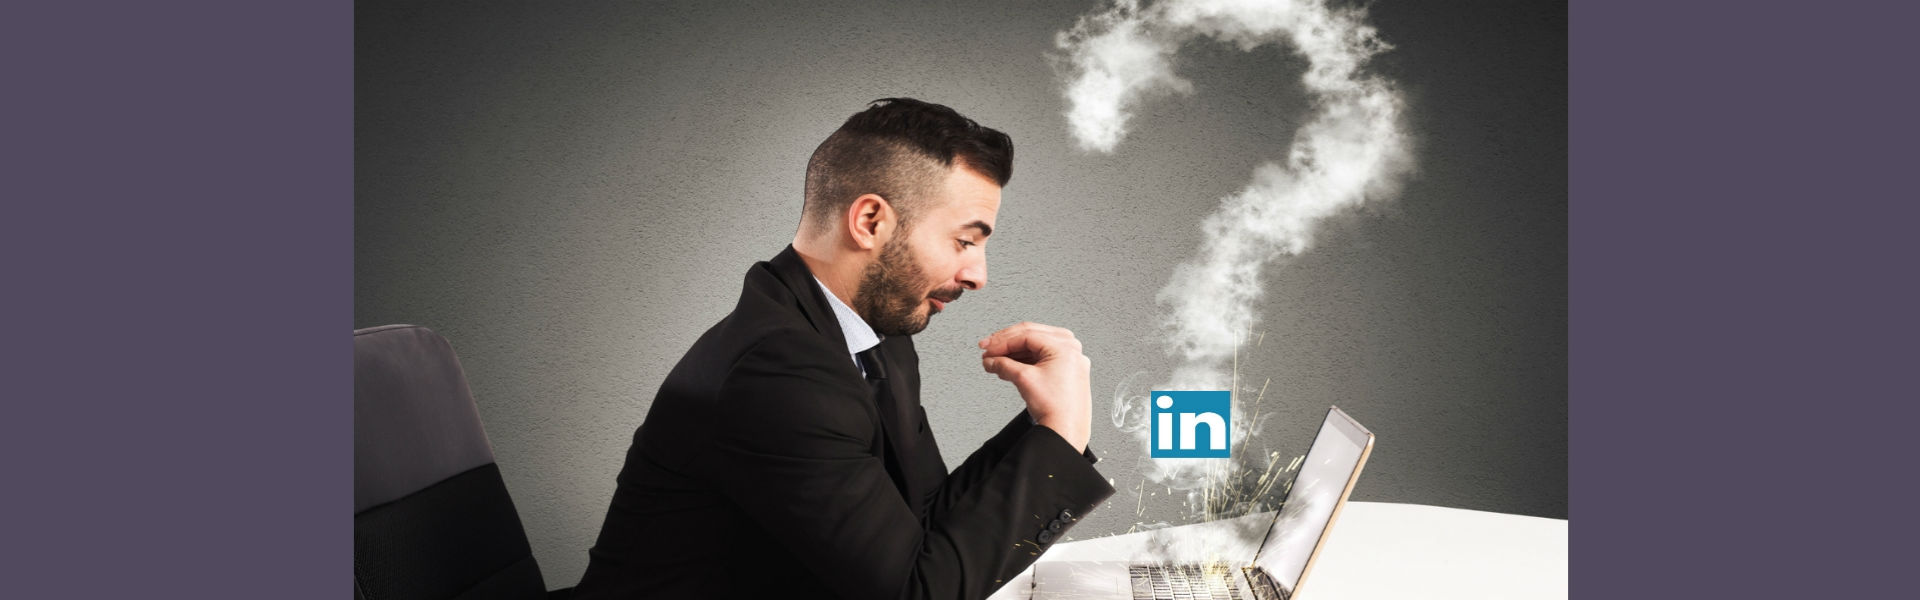 How to delete LinkedIn, How to delete LinkedIn account